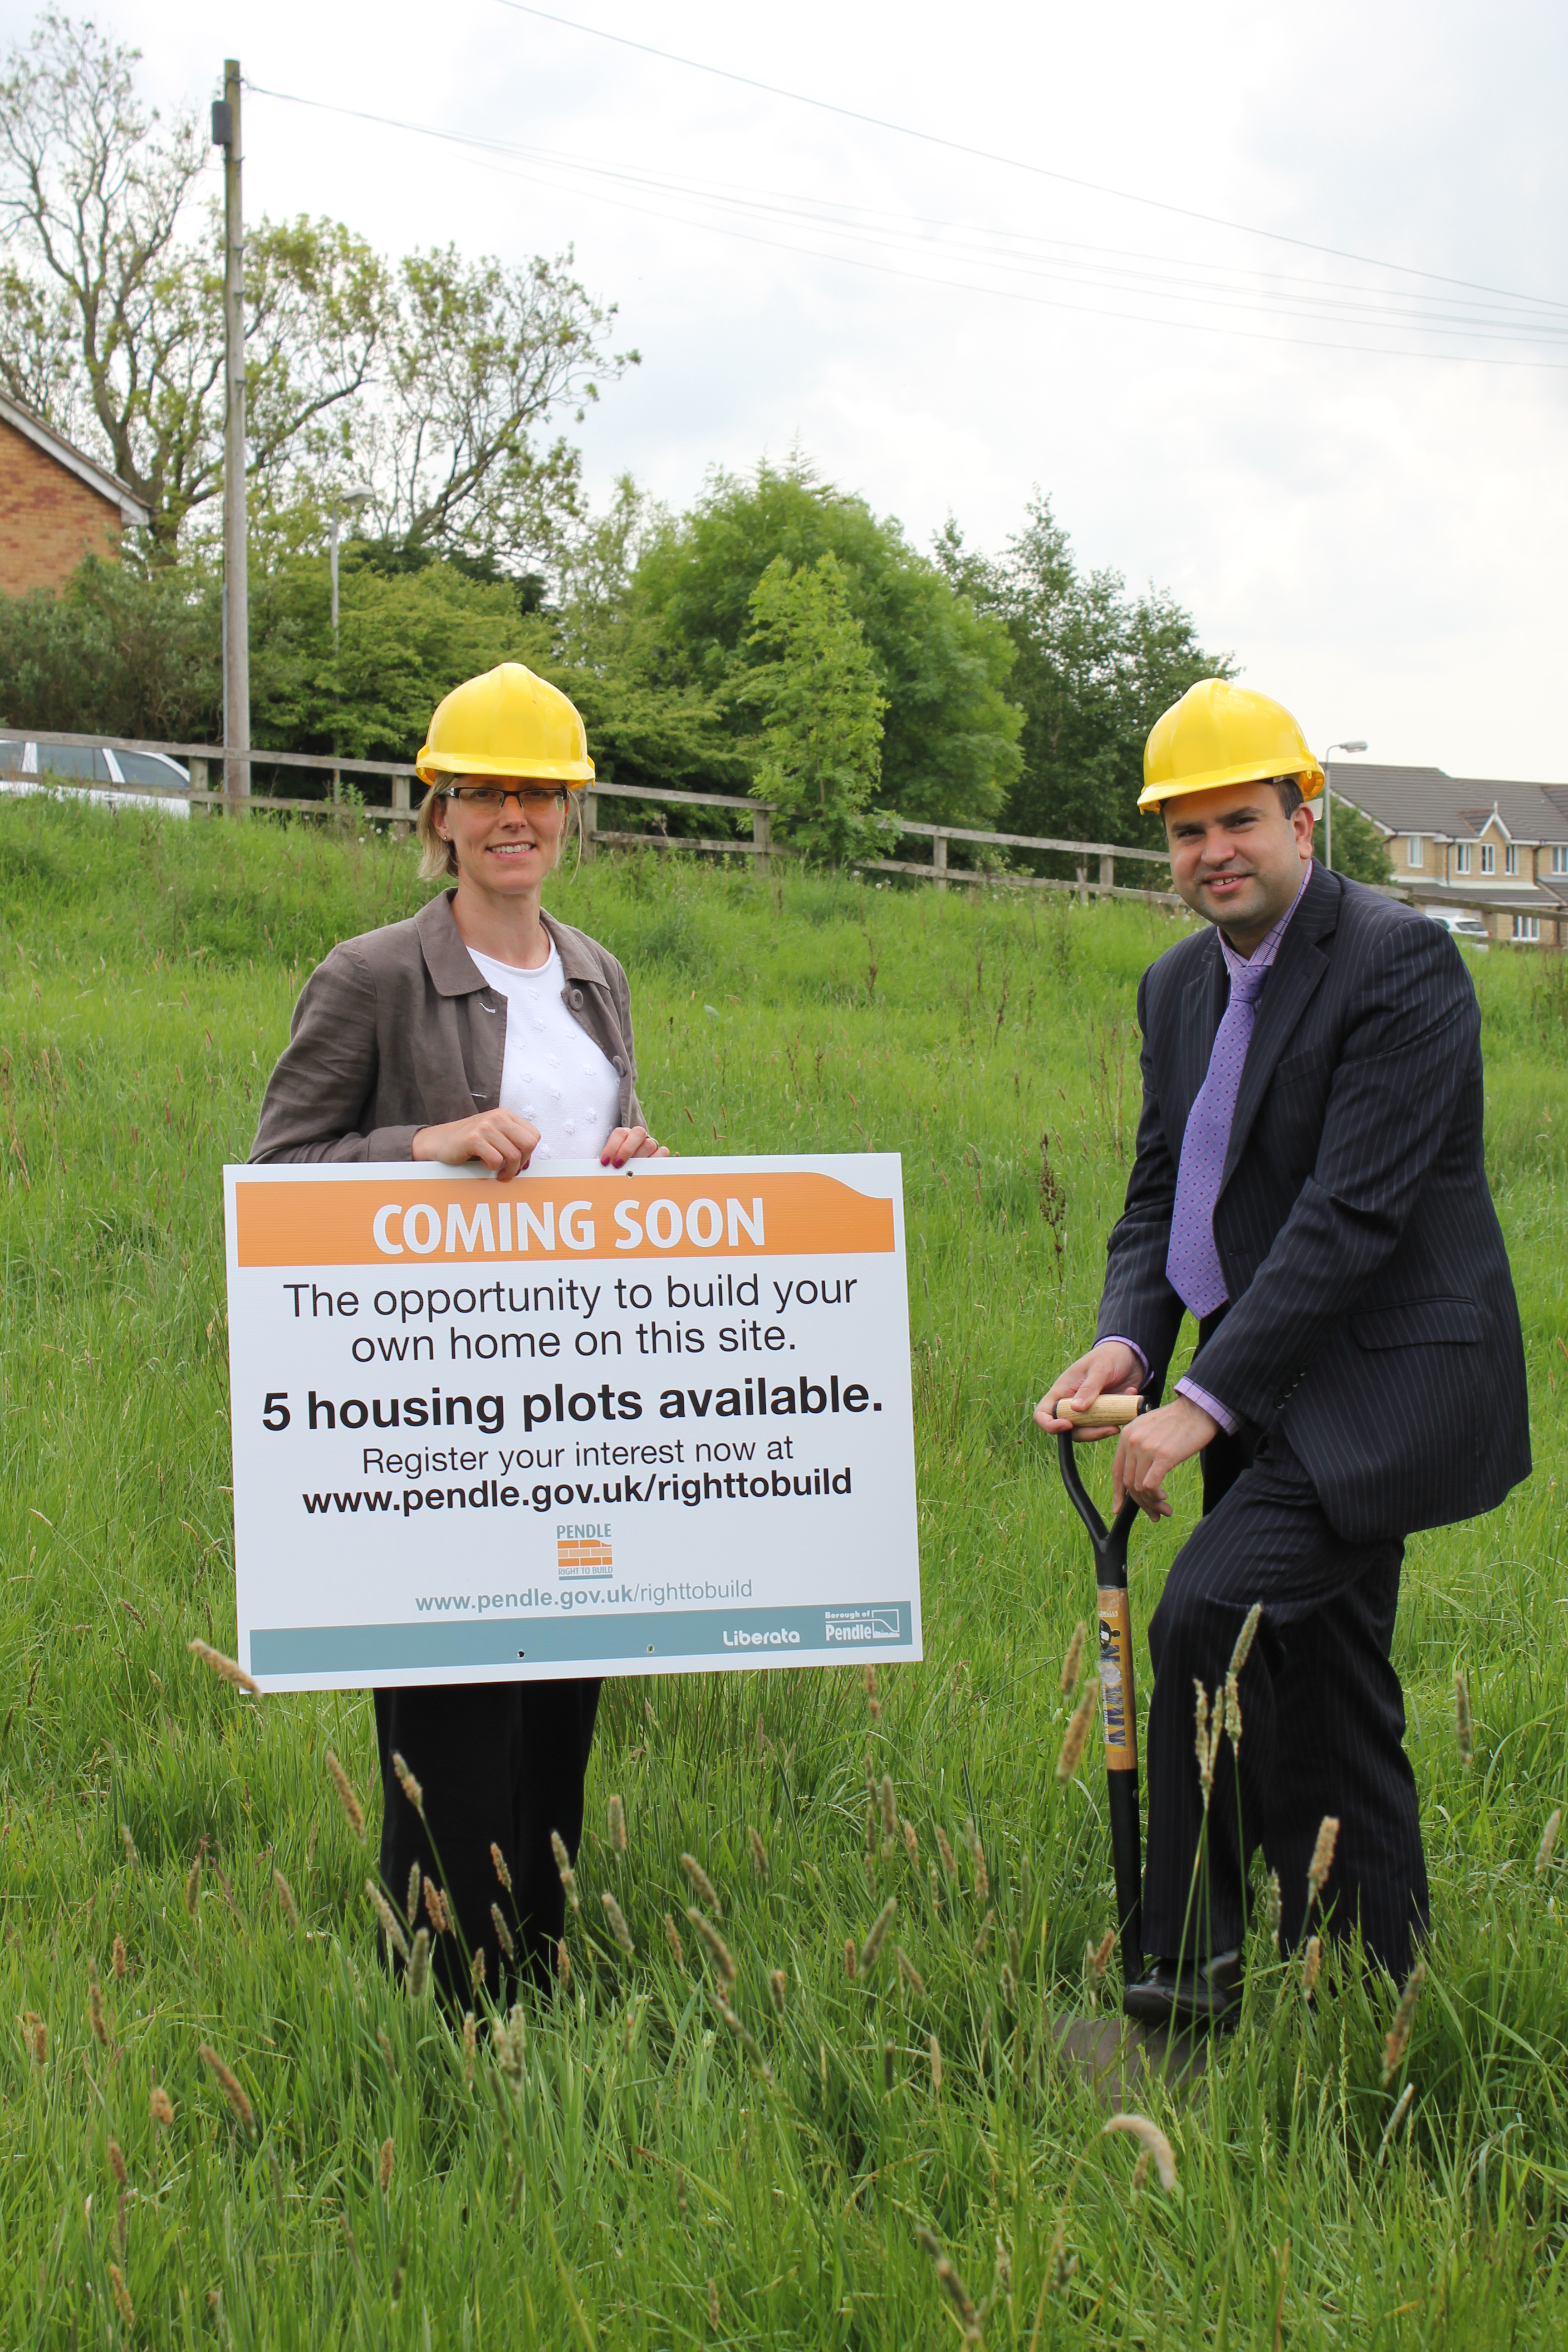 Want to build your own home in Pendle?